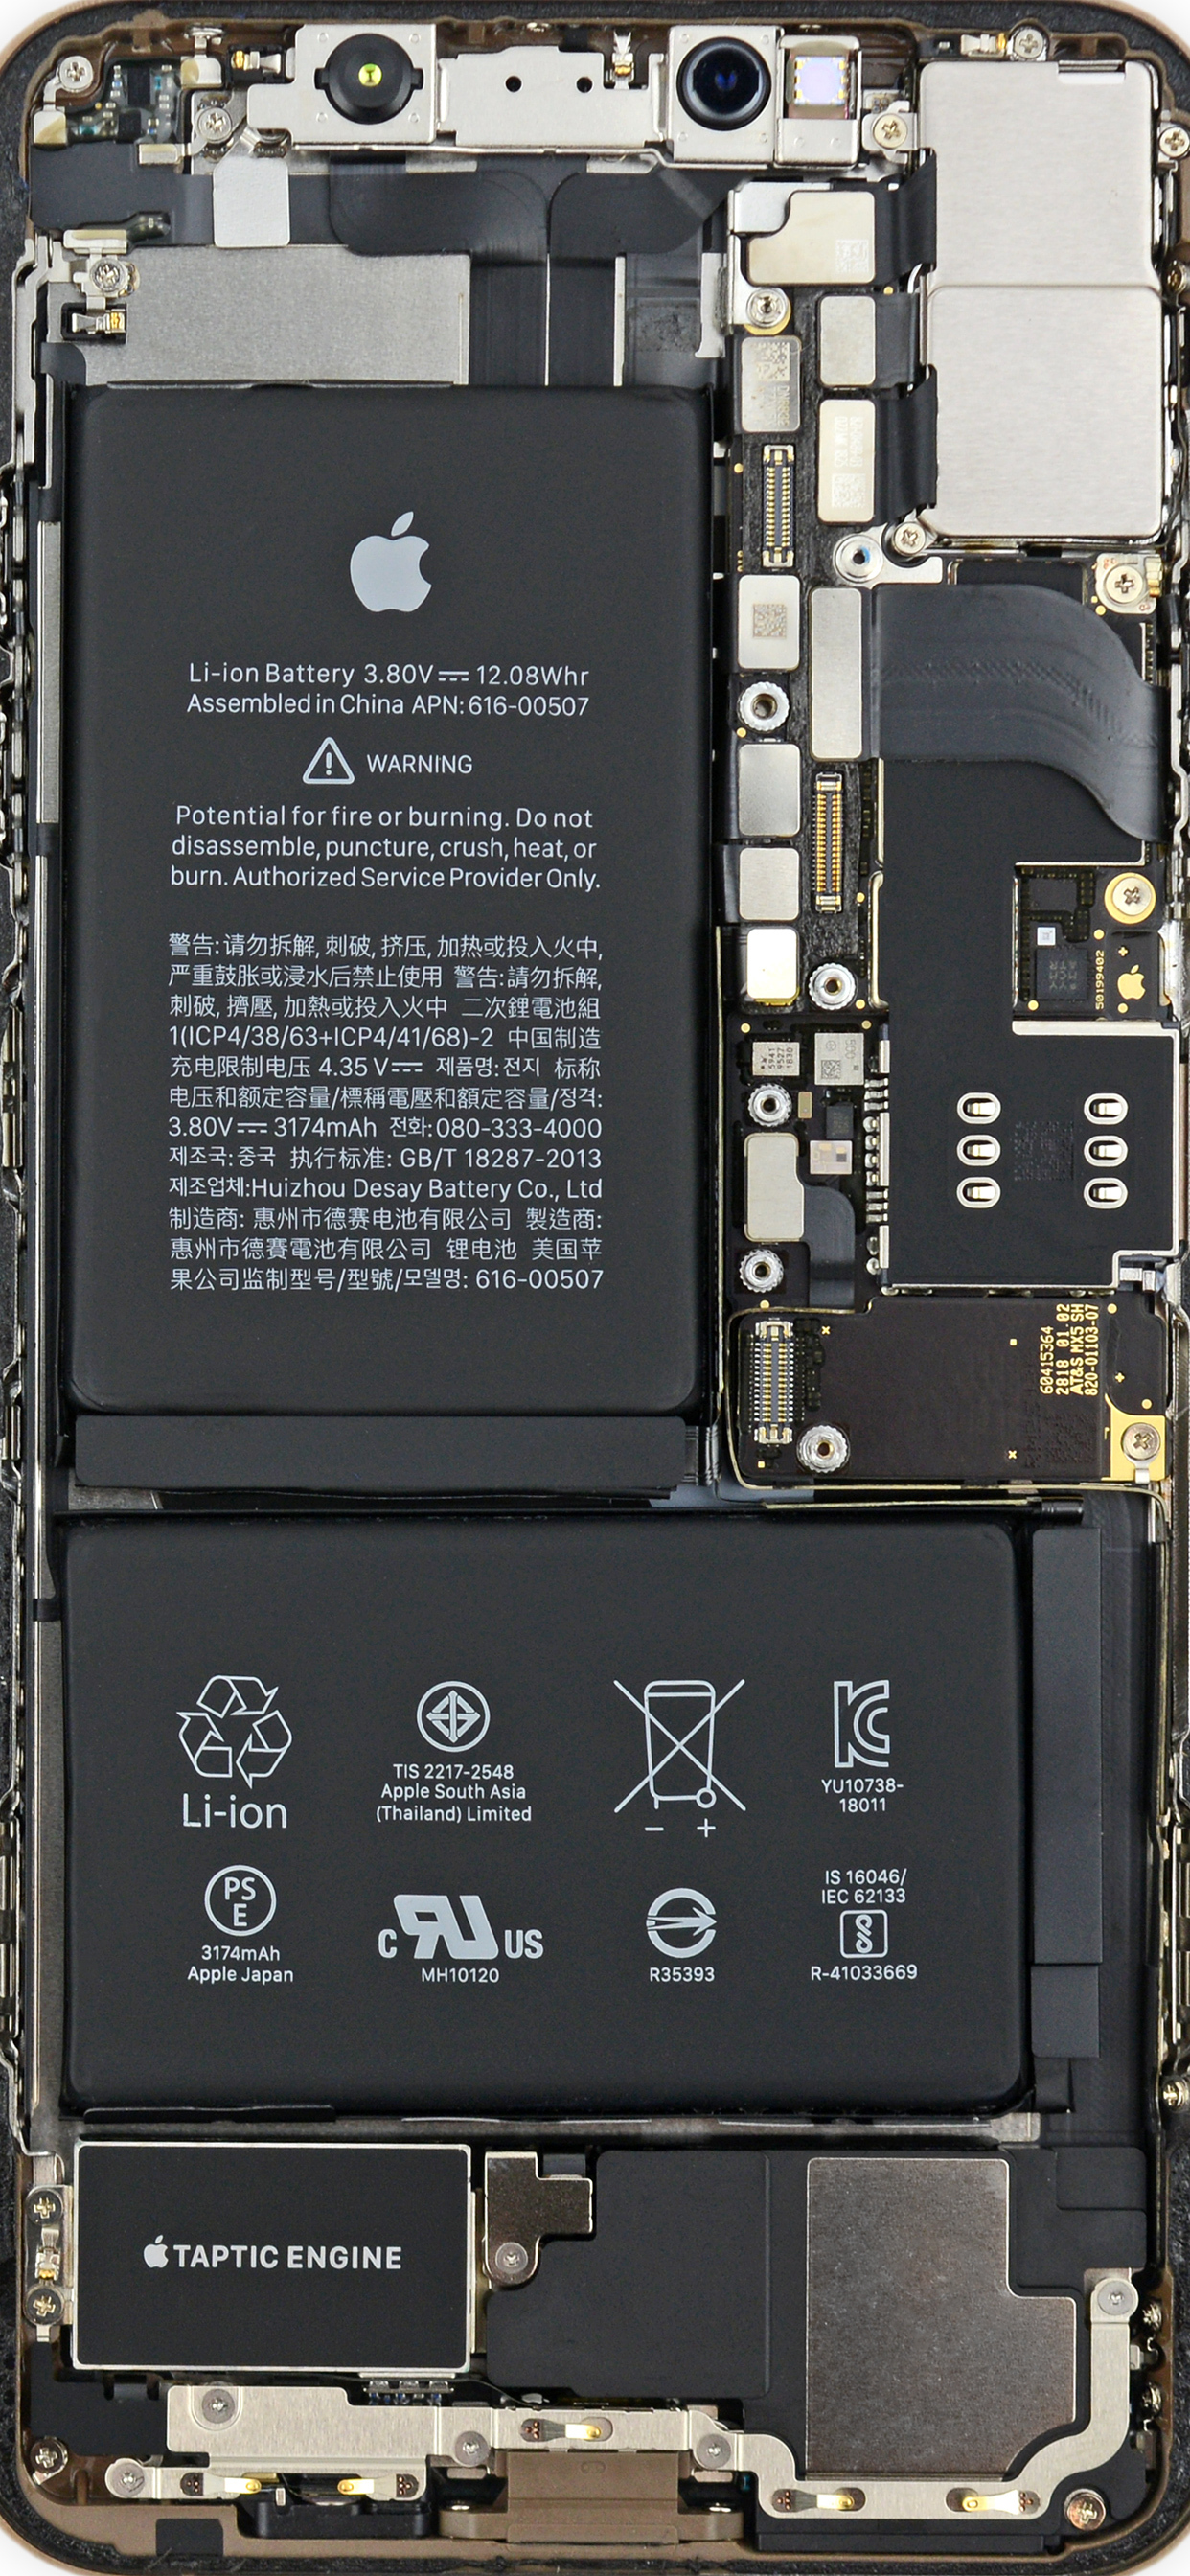 Wallpaper do iPhone XS Max (iFixit)